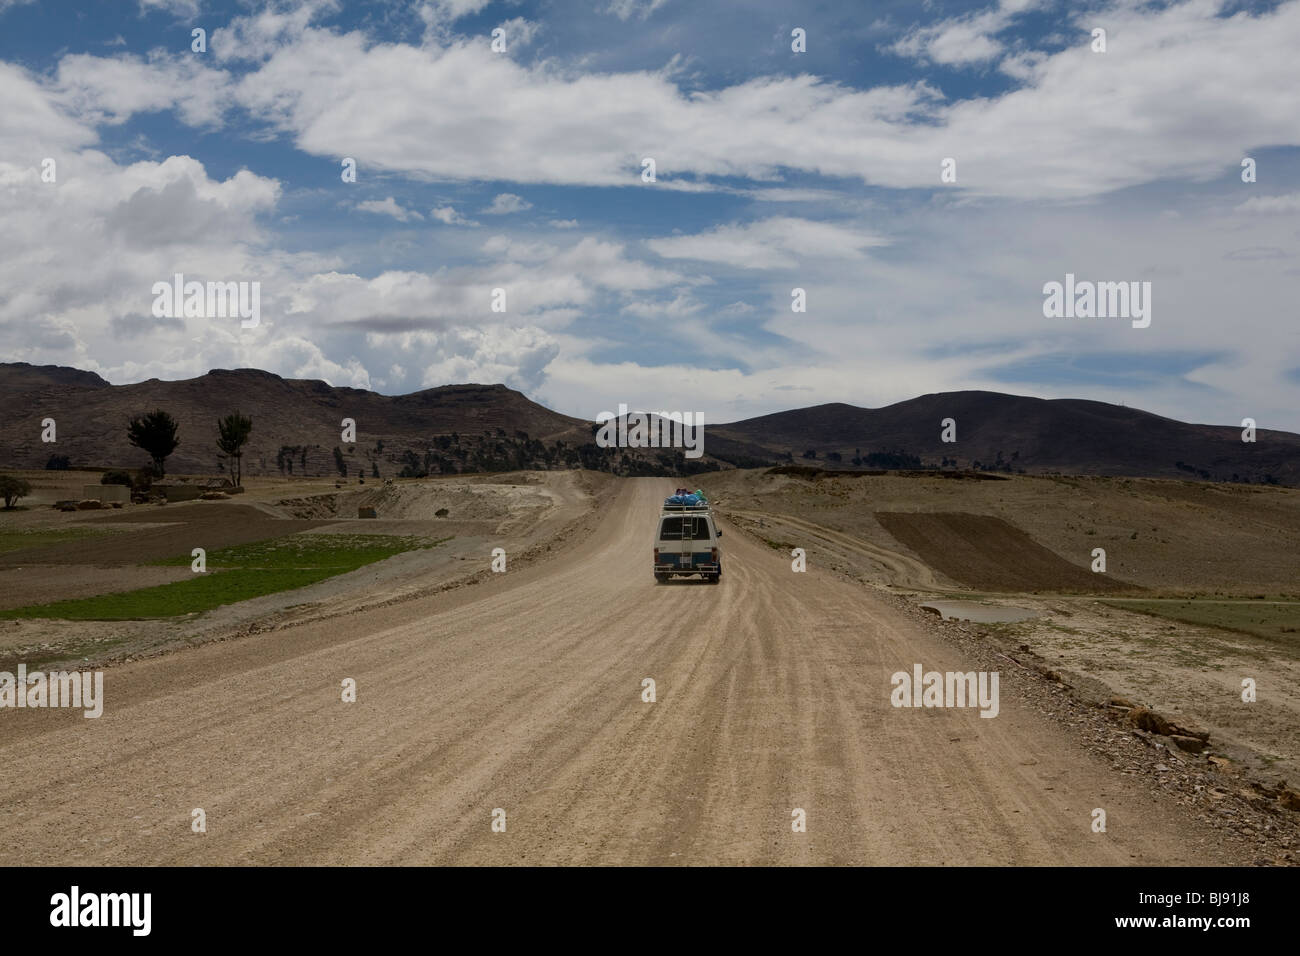 Van driving along dusty road on the bolivian alto plano - Stock Image